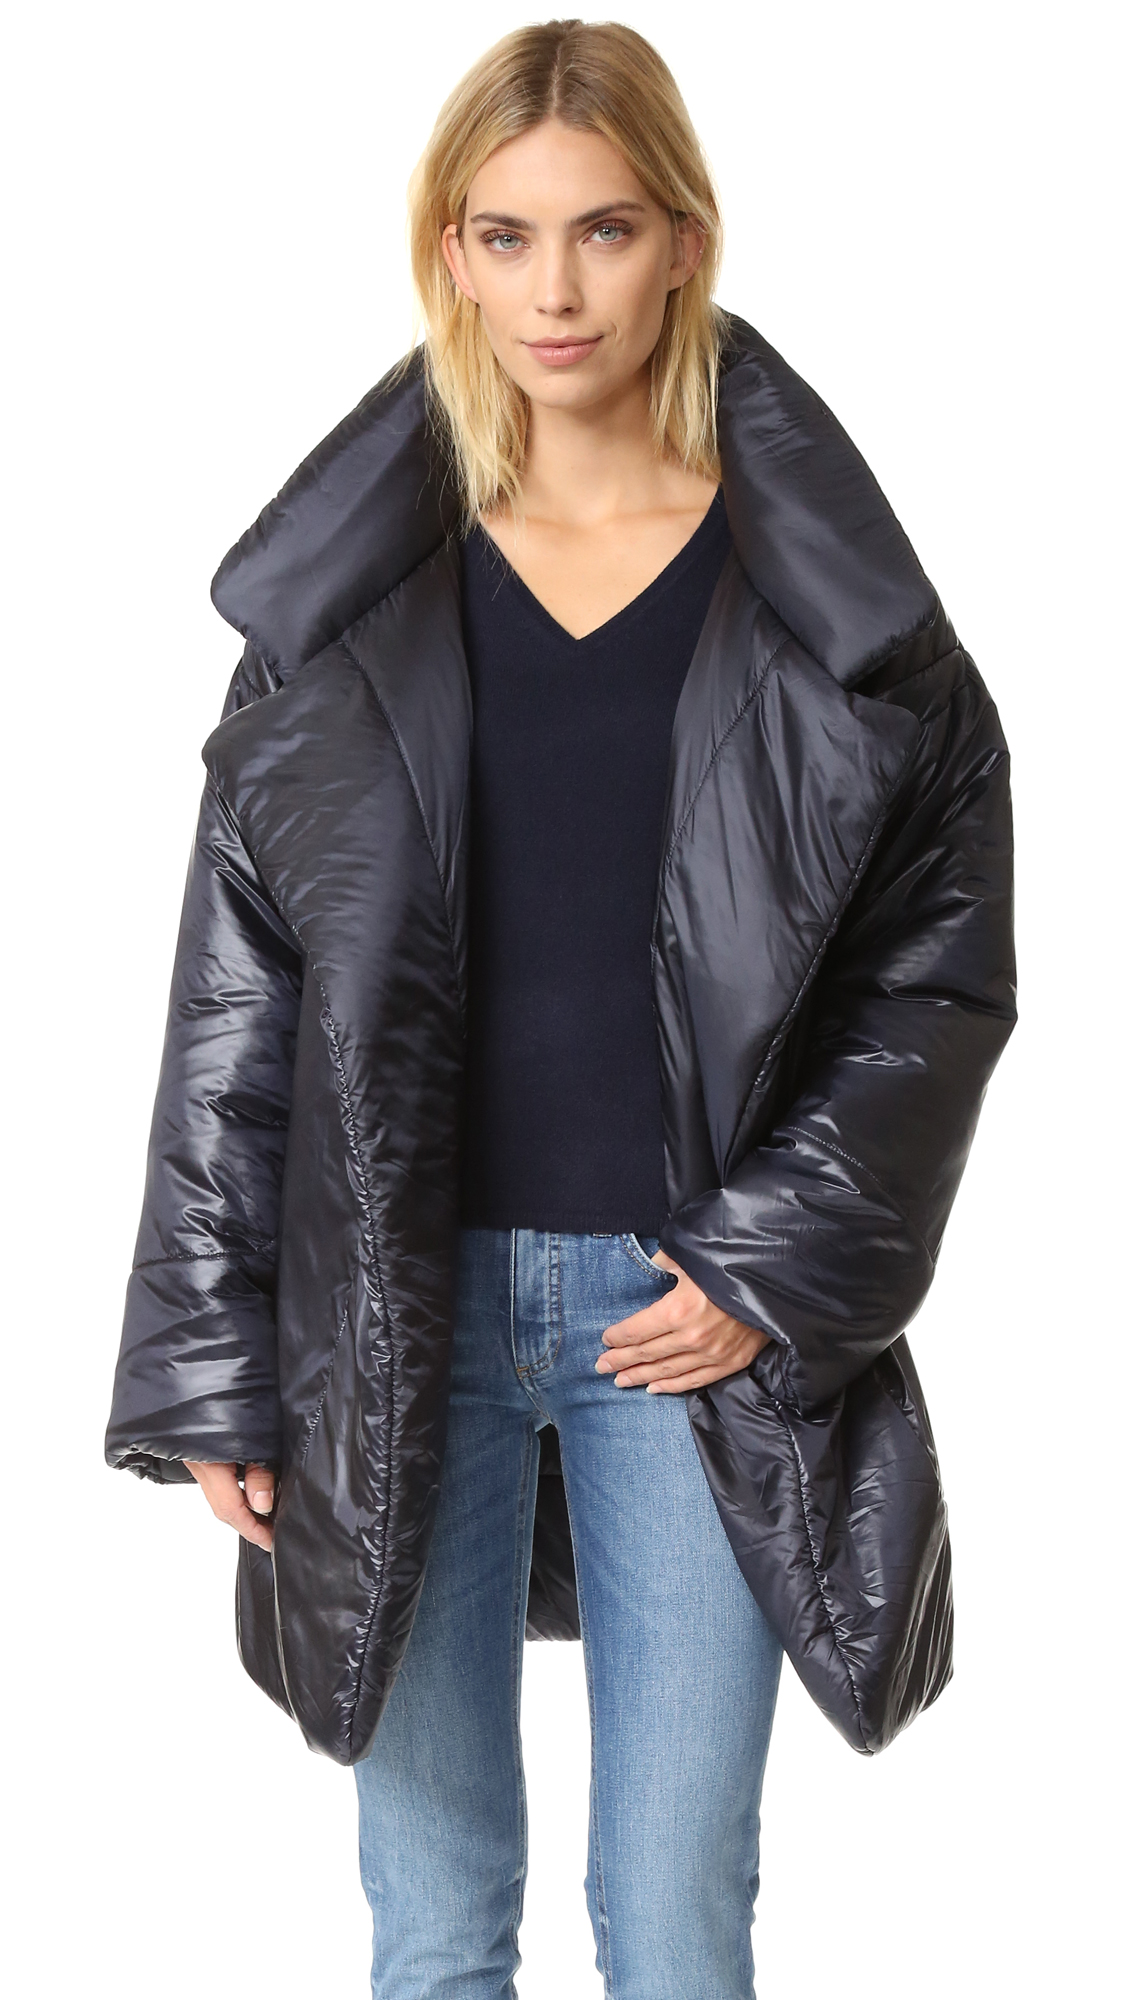 A warm, fiber filled Norma Kamali coat with lustrous sheen. The optional self belt cinches the loose, open silhouette. Long sleeves. Lined. Fabric: Glossy technical weave. Shell: 100% nylon. Fill: 100% polyester. Spot clean. Made in the USA.